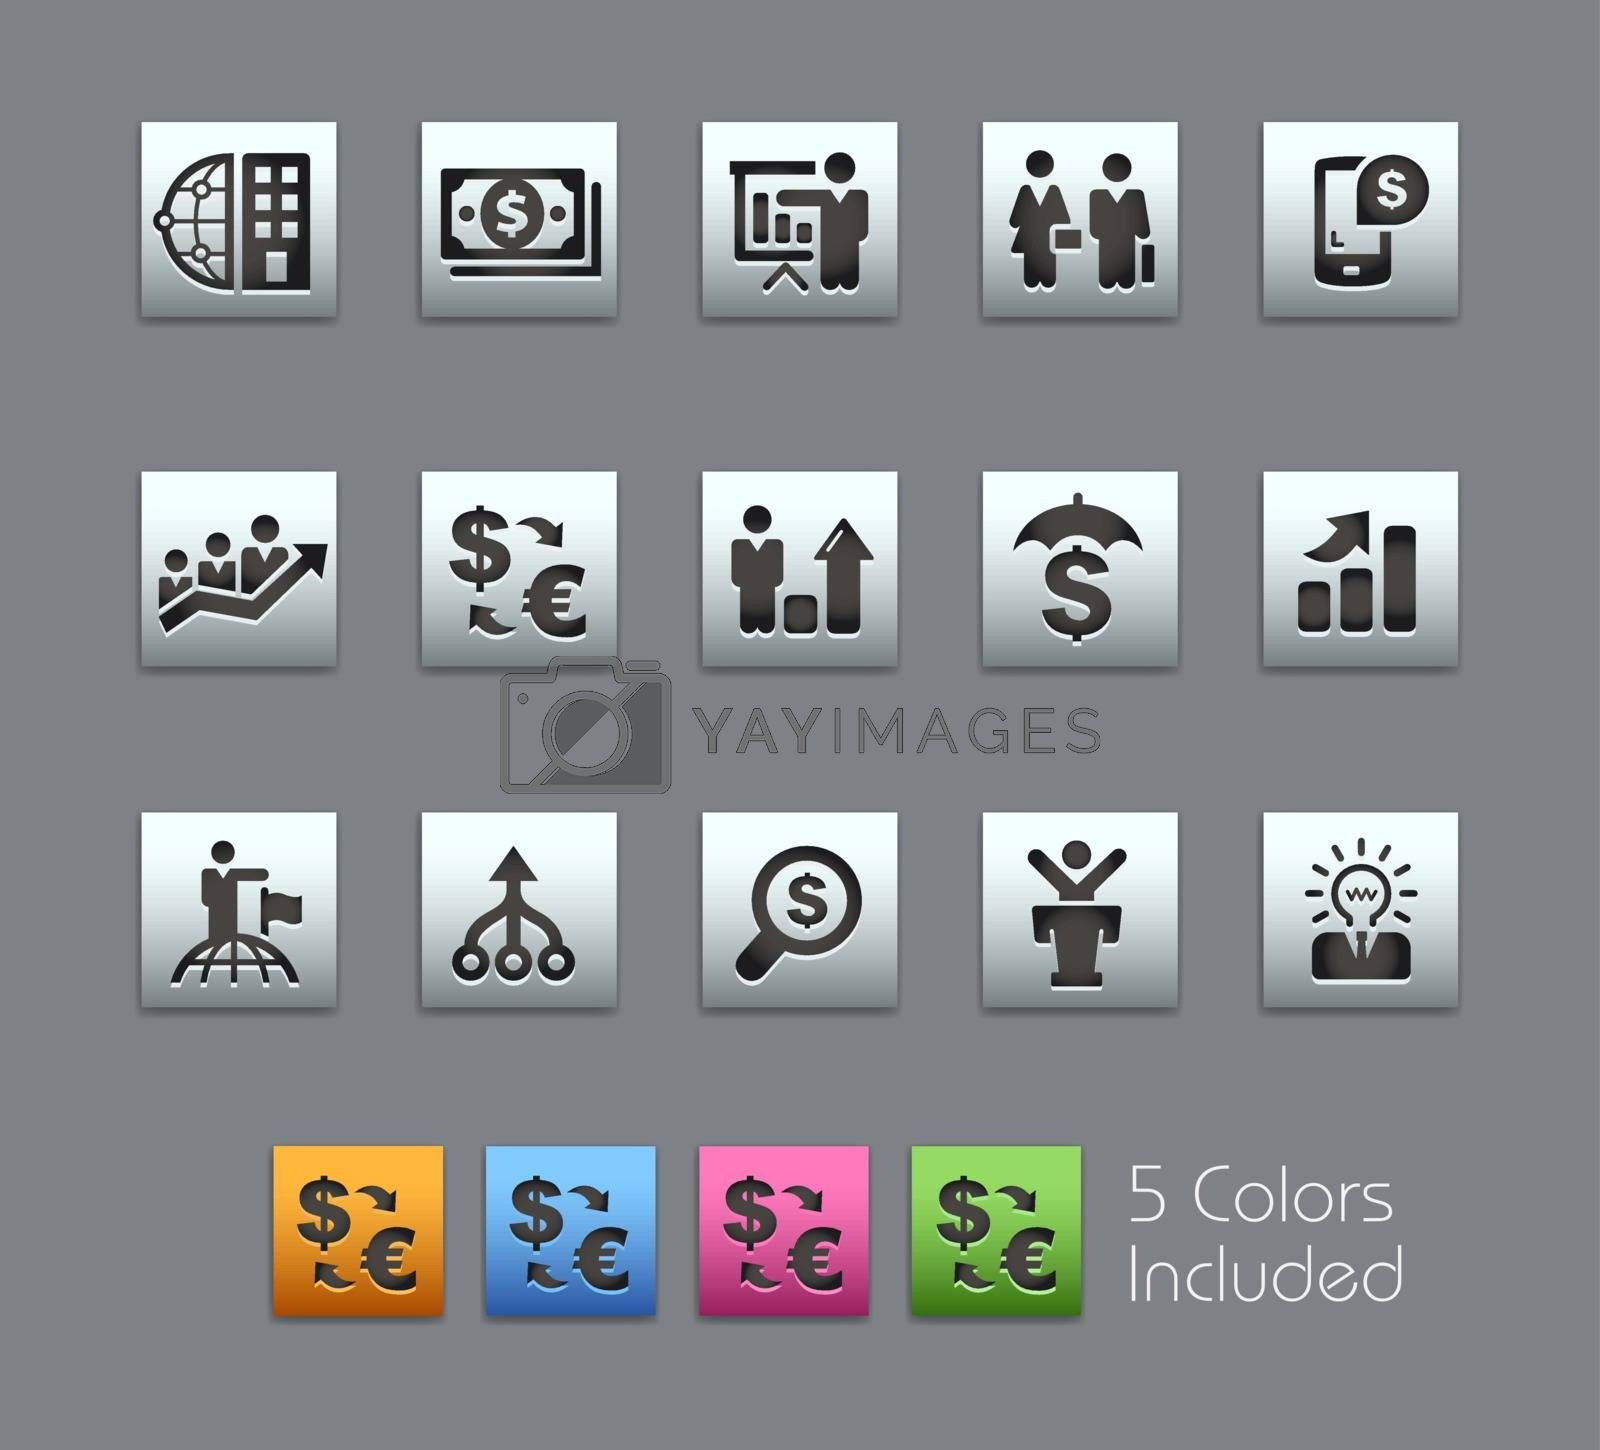 The .eps file includes 5 color versions in different layers